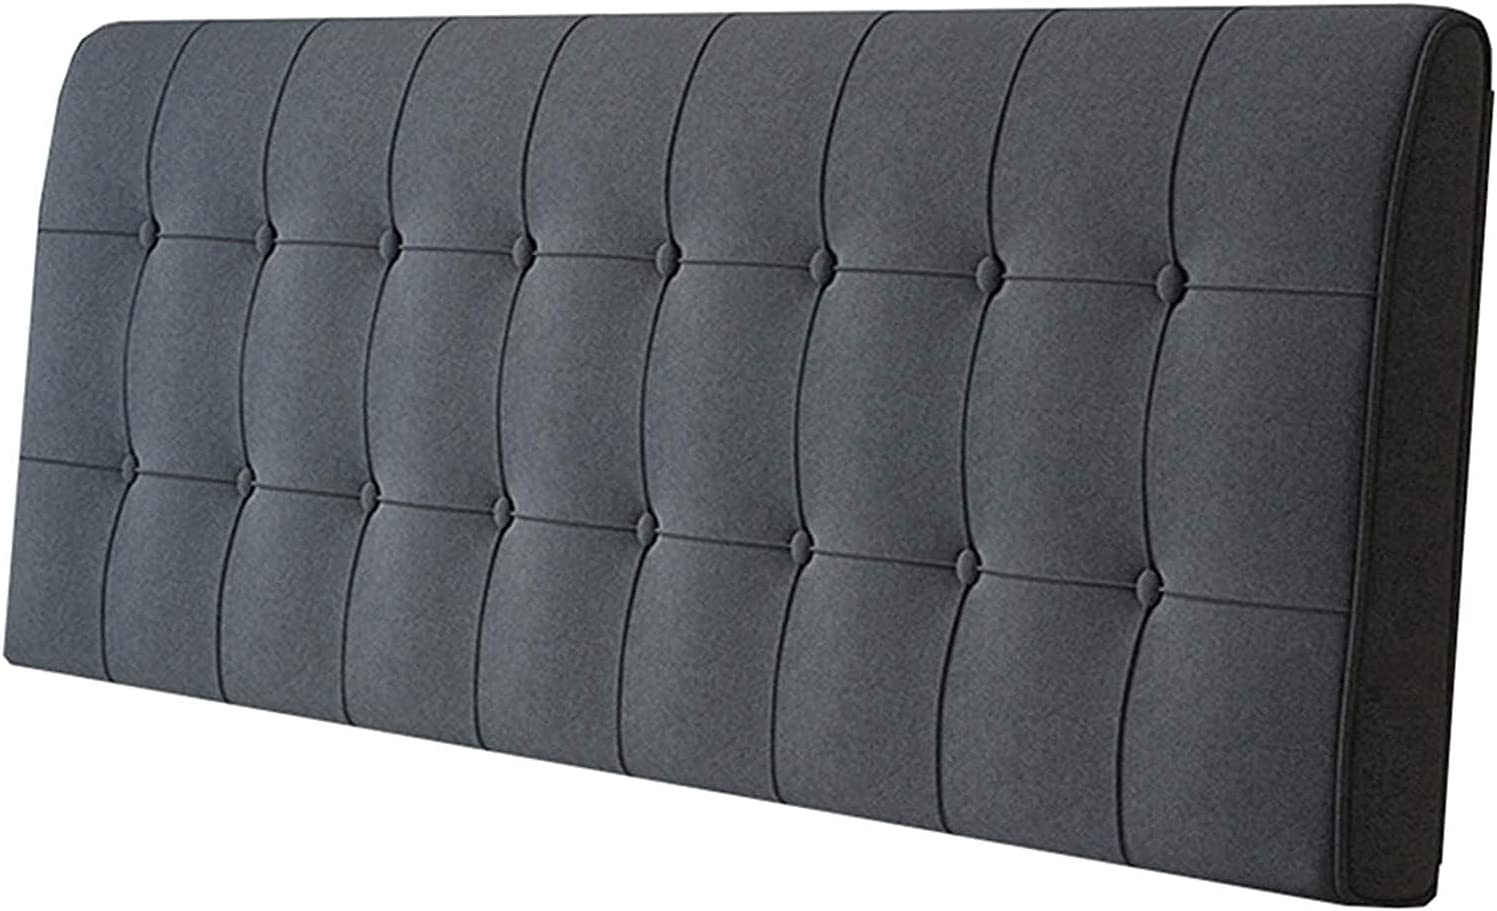 Bed Rest Pillows headboard Removabl Bed-with Excellent SEAL limited product Pillow backrest